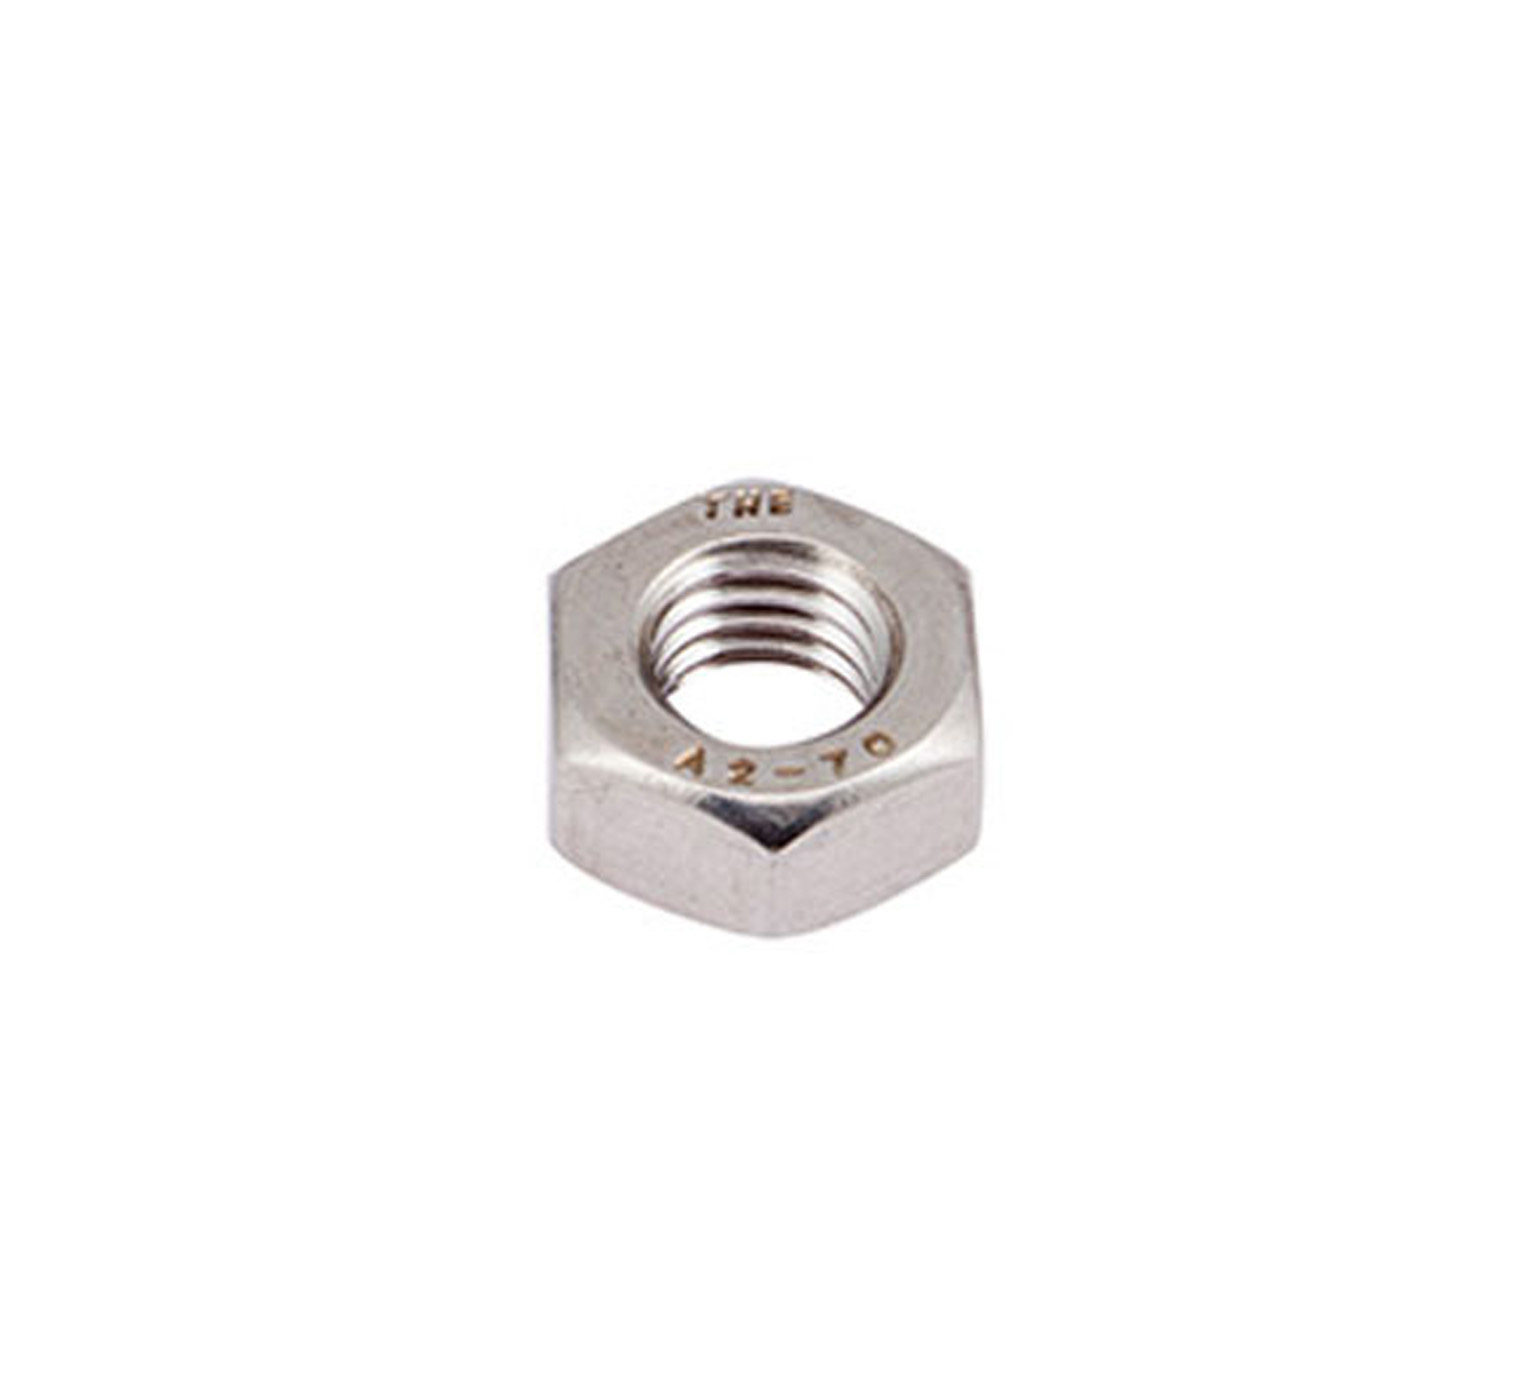 07787 Stainless Steel Hex Nut - M10 Thread x 0.315 in alt 1